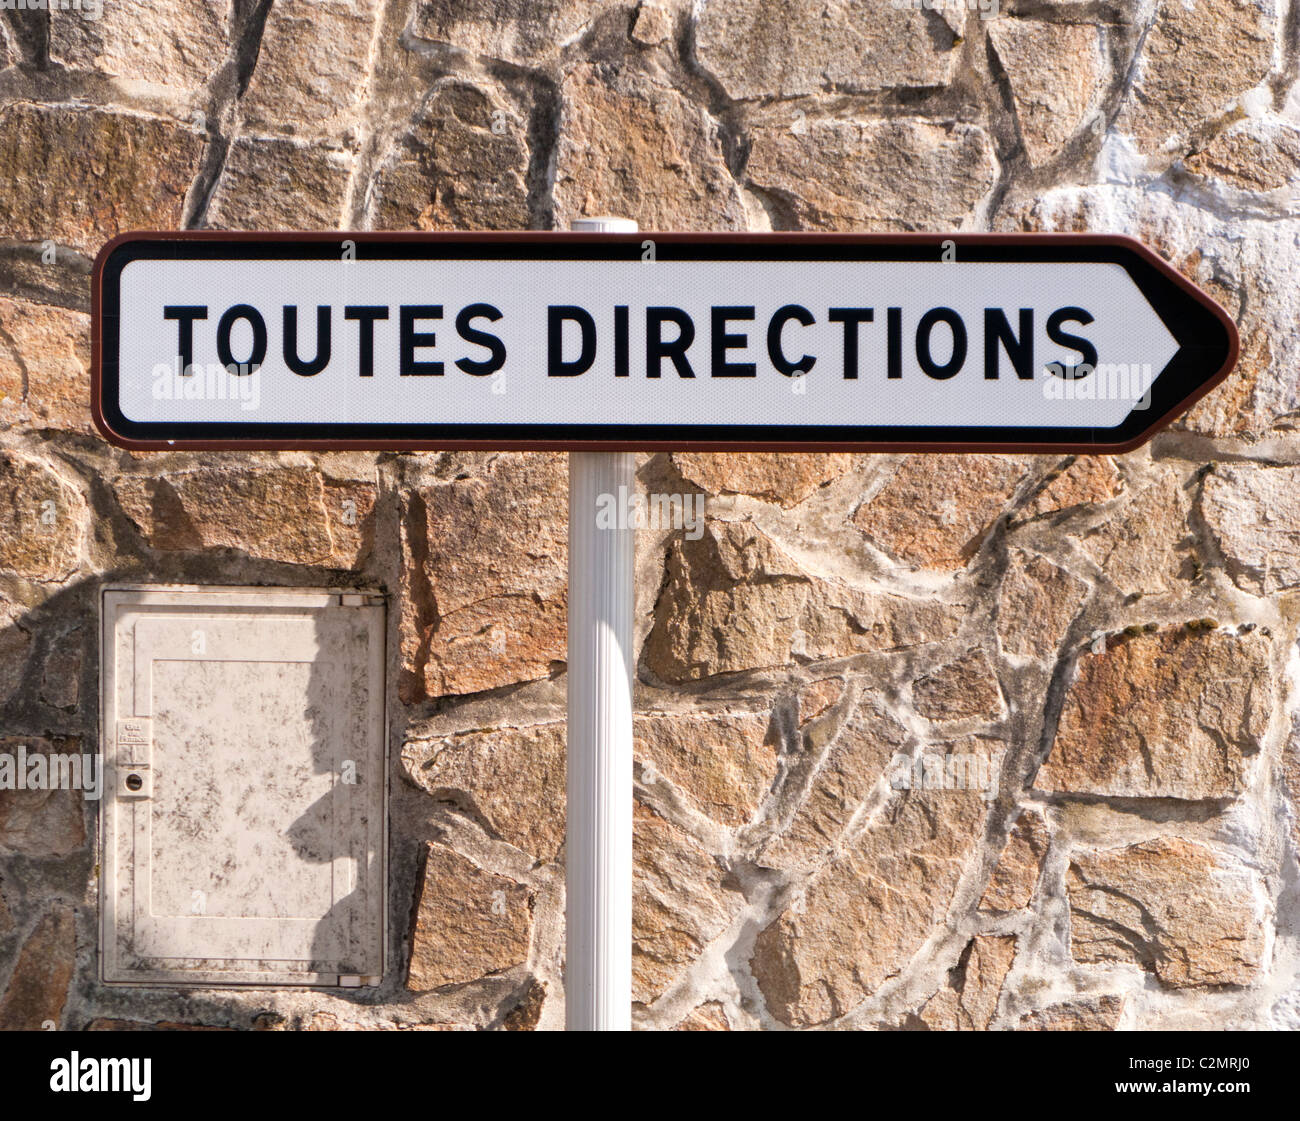 French road sign signpost Toutes Directions directional signs, France - Stock Image